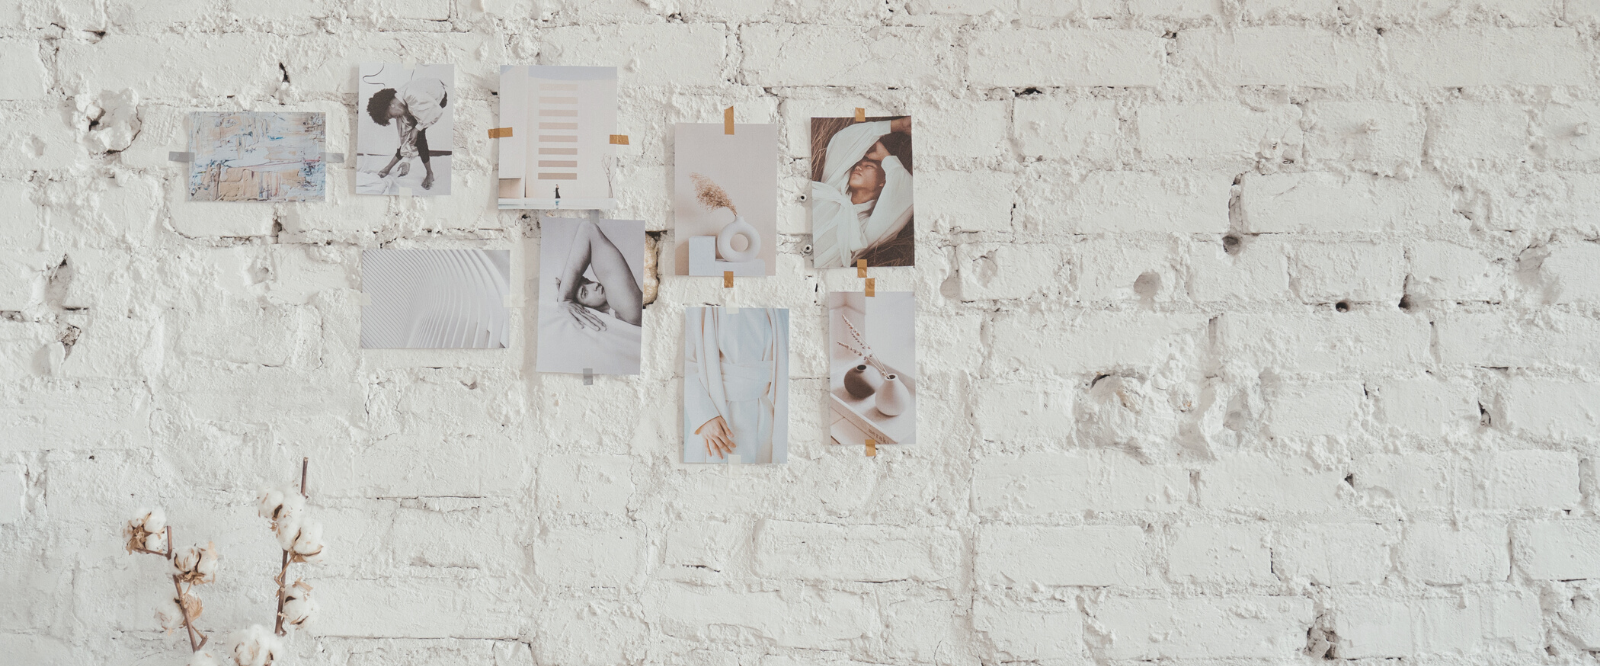 dream board with images taped to wall